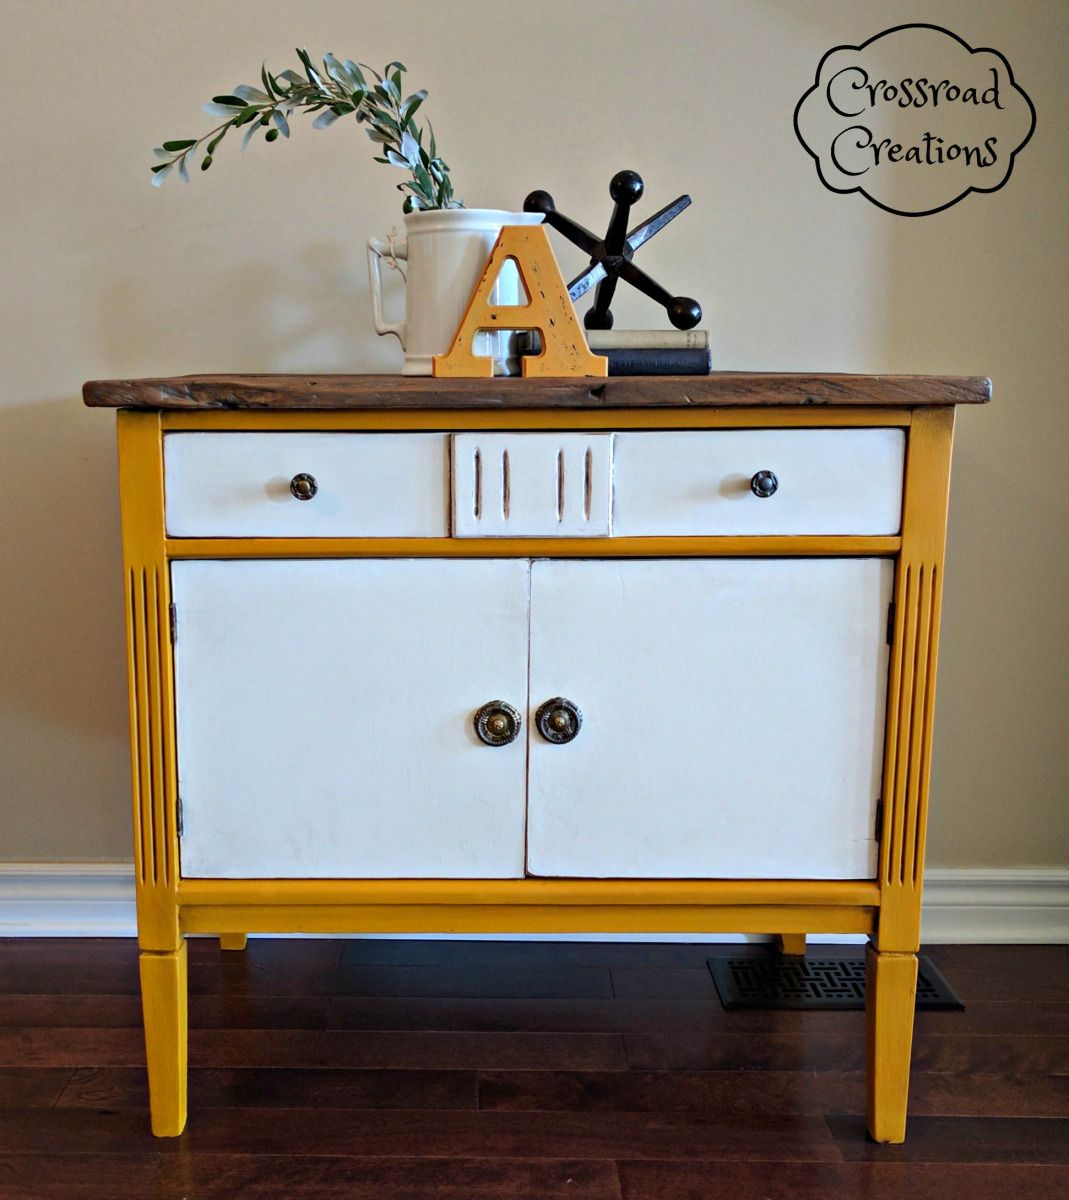 This fabulous washstand was given a modern flare by Andrea from Crossroad Creations with Vanilla Frosting, Fresh Mustard, and both Natural and Antiquing Wax!